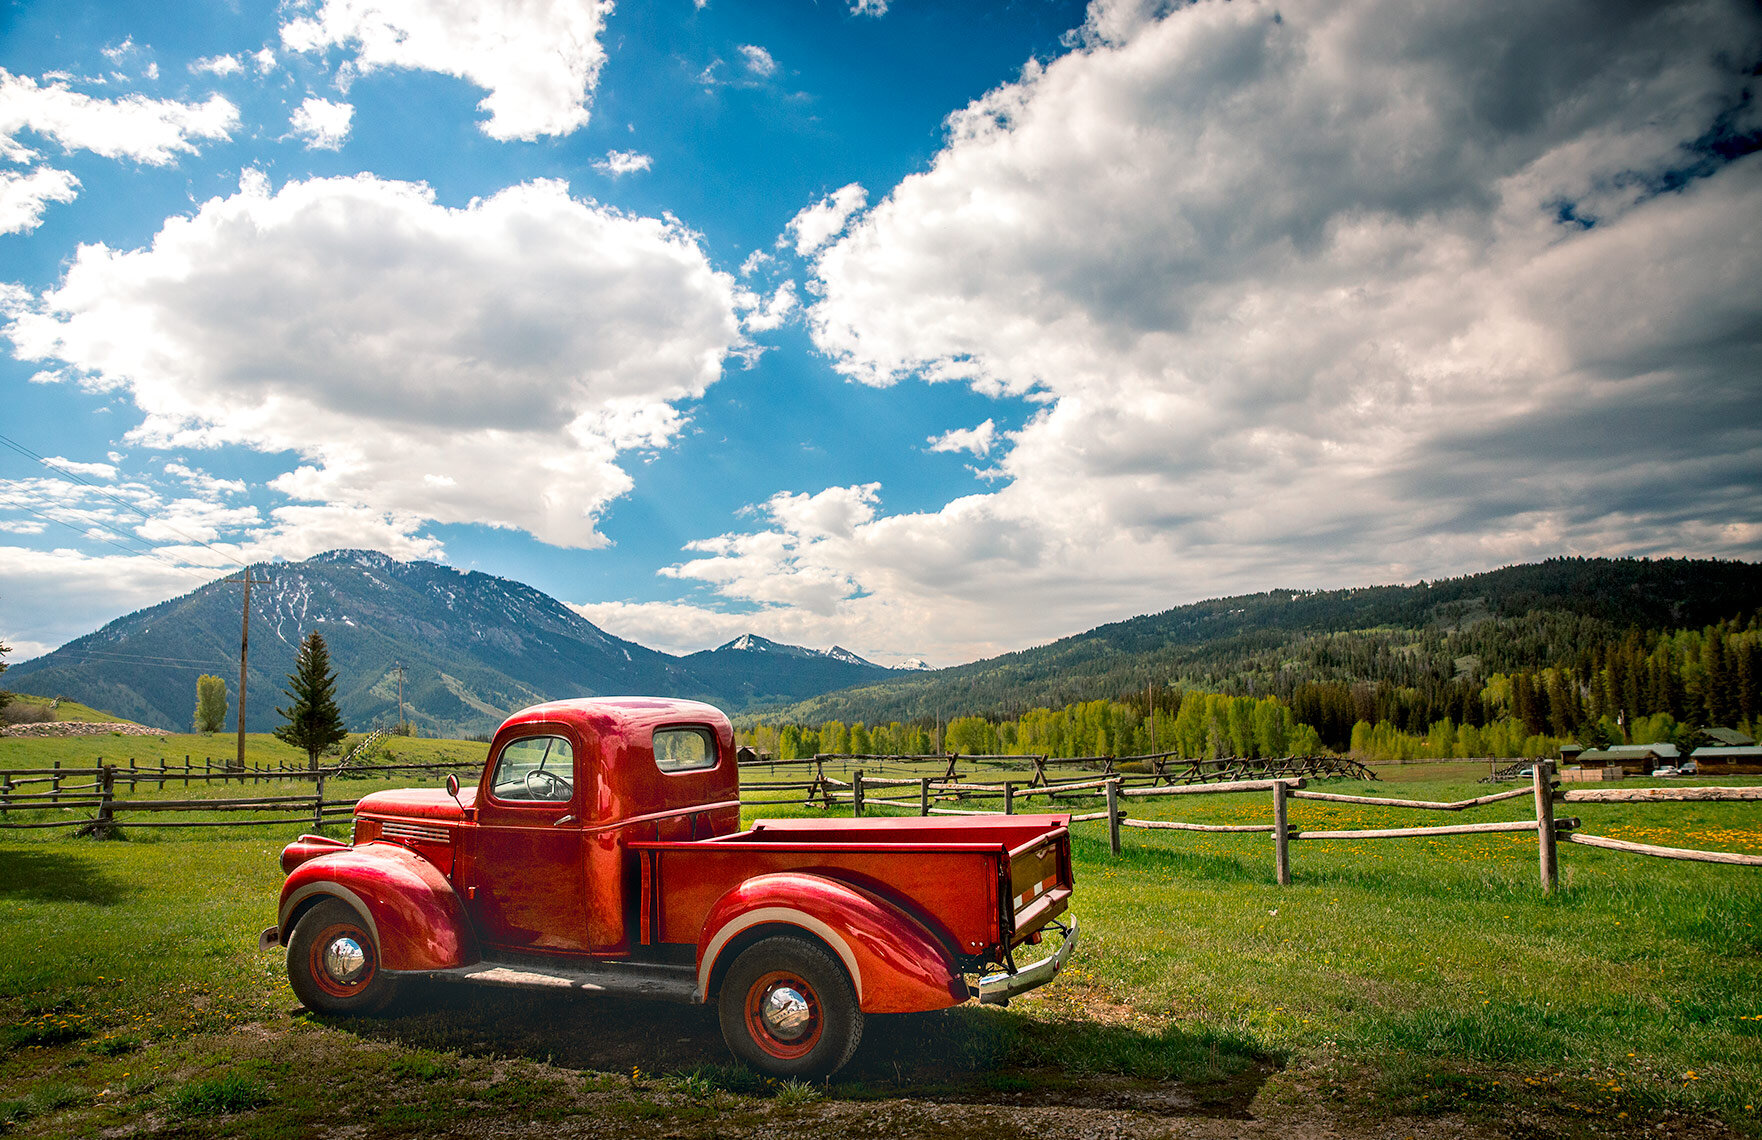 American West Photographer: Red truck on a farm.